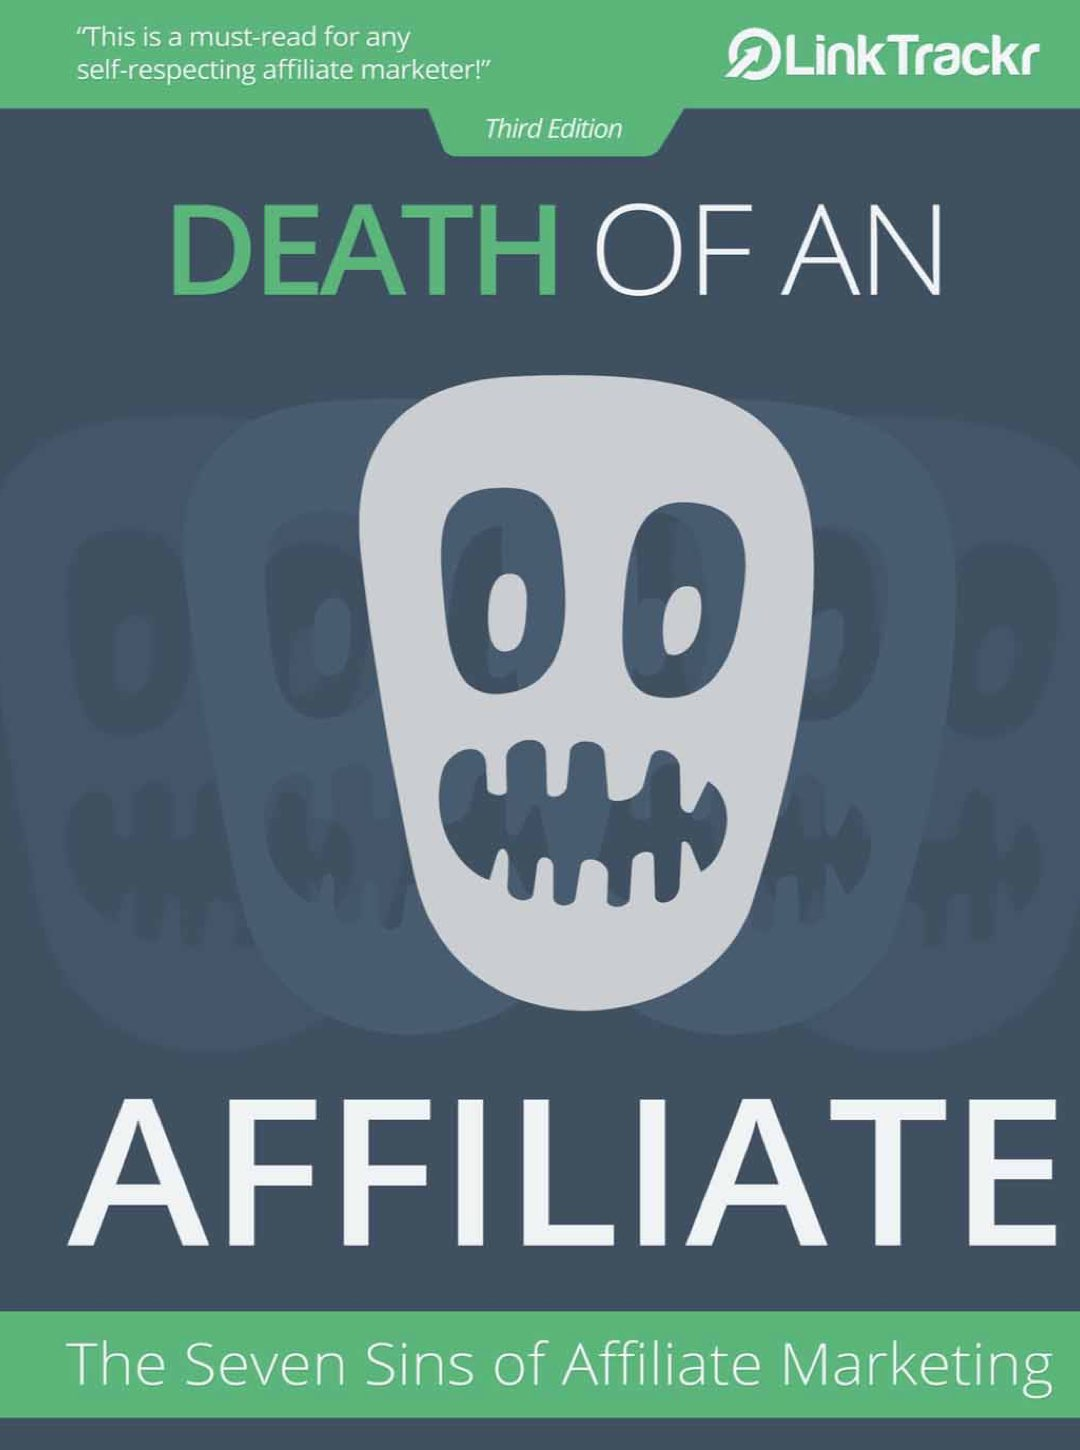 The Death of an Affiliate